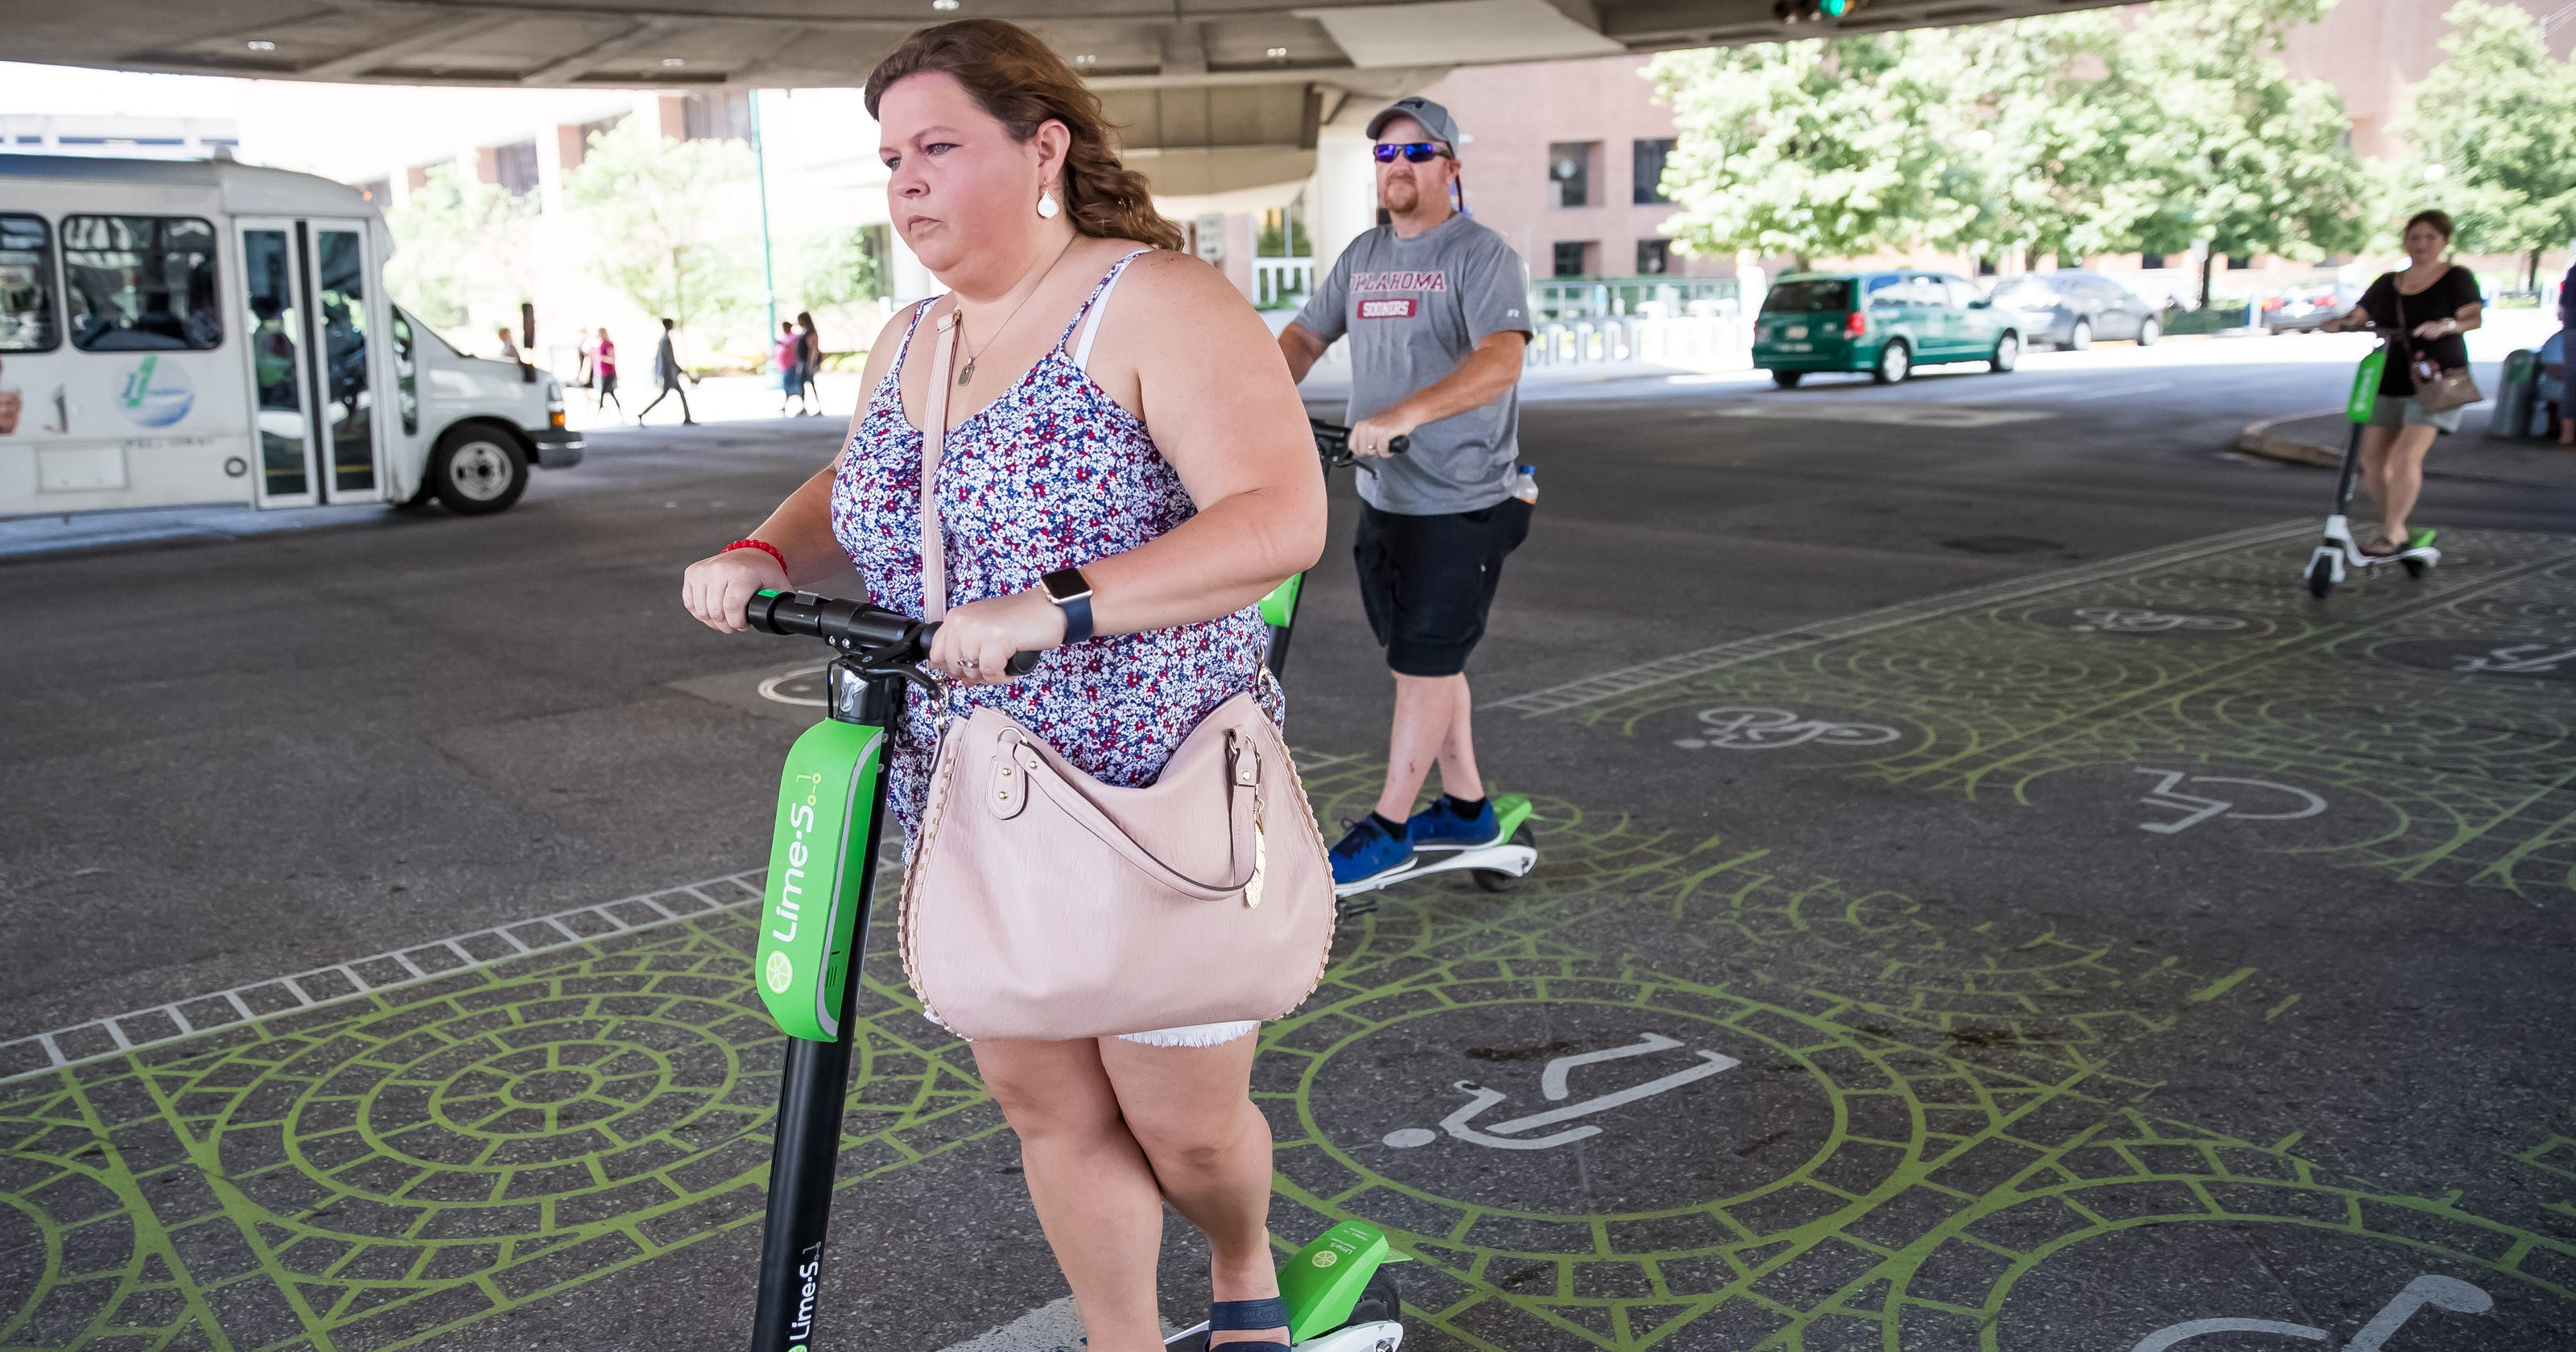 Indianapolis sets new rules on electric scooters